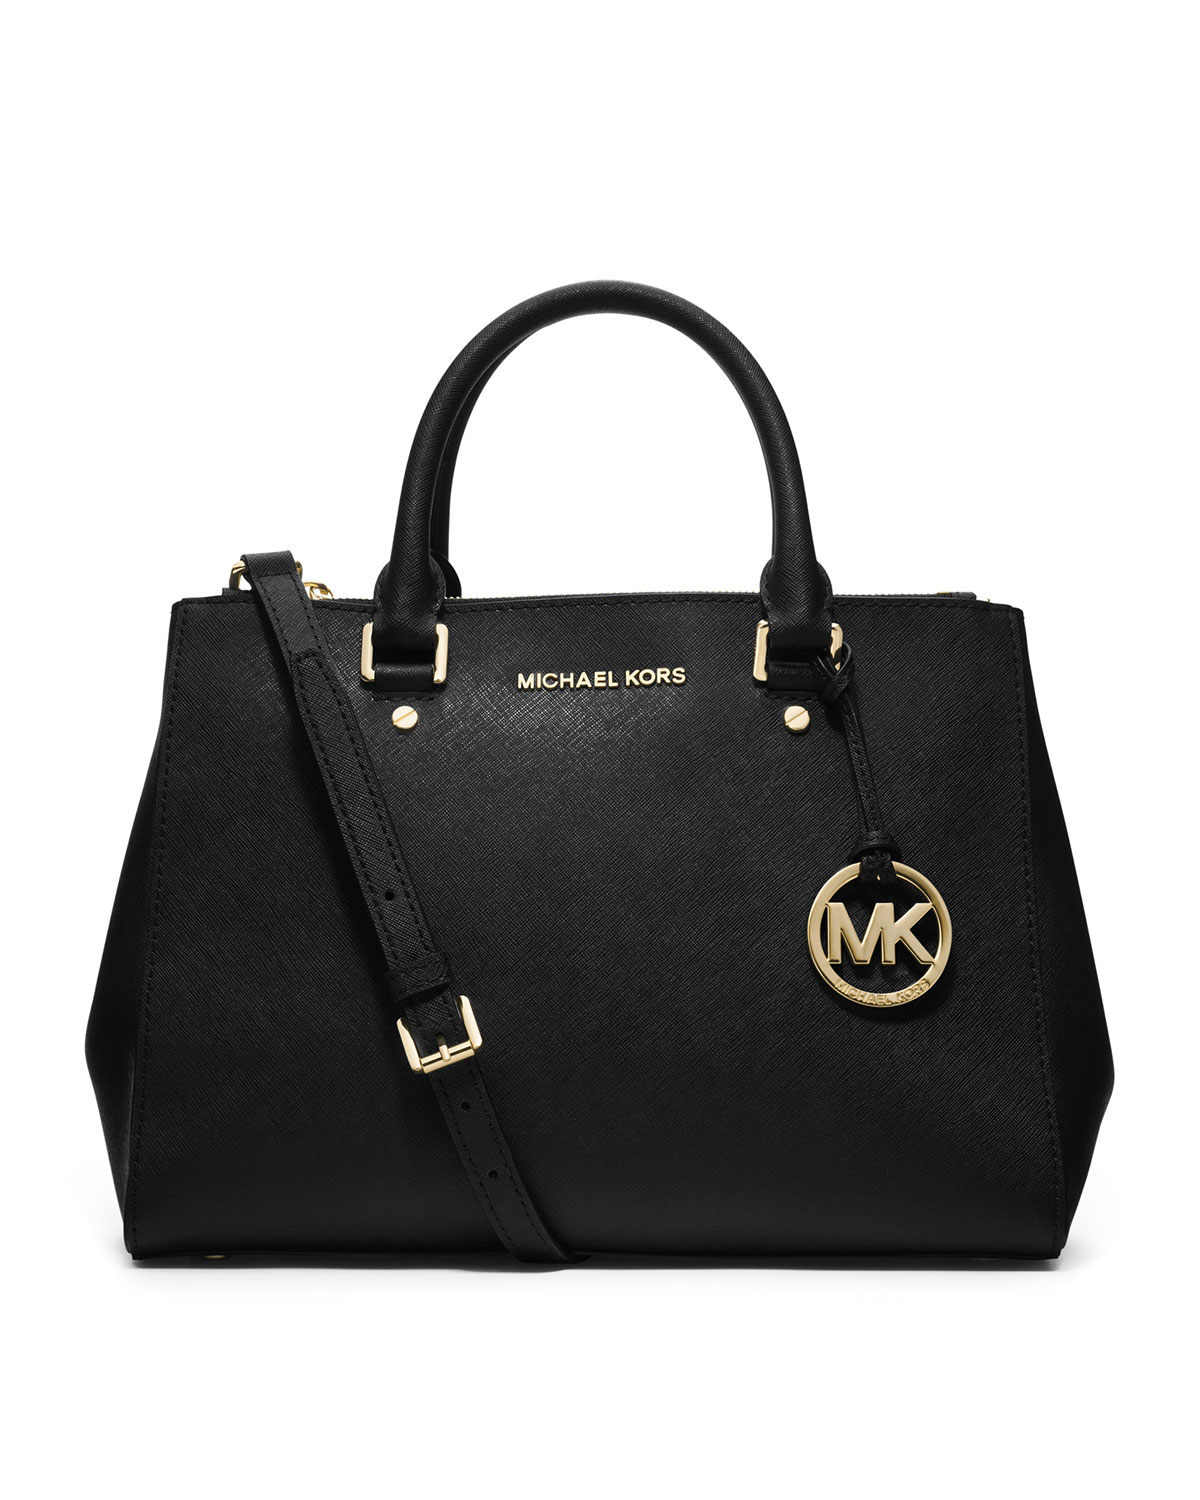 a06b5e28e825 MICHAEL Michael Kors Sutton Medium Satchel Bag, Black | Neiman Marcus